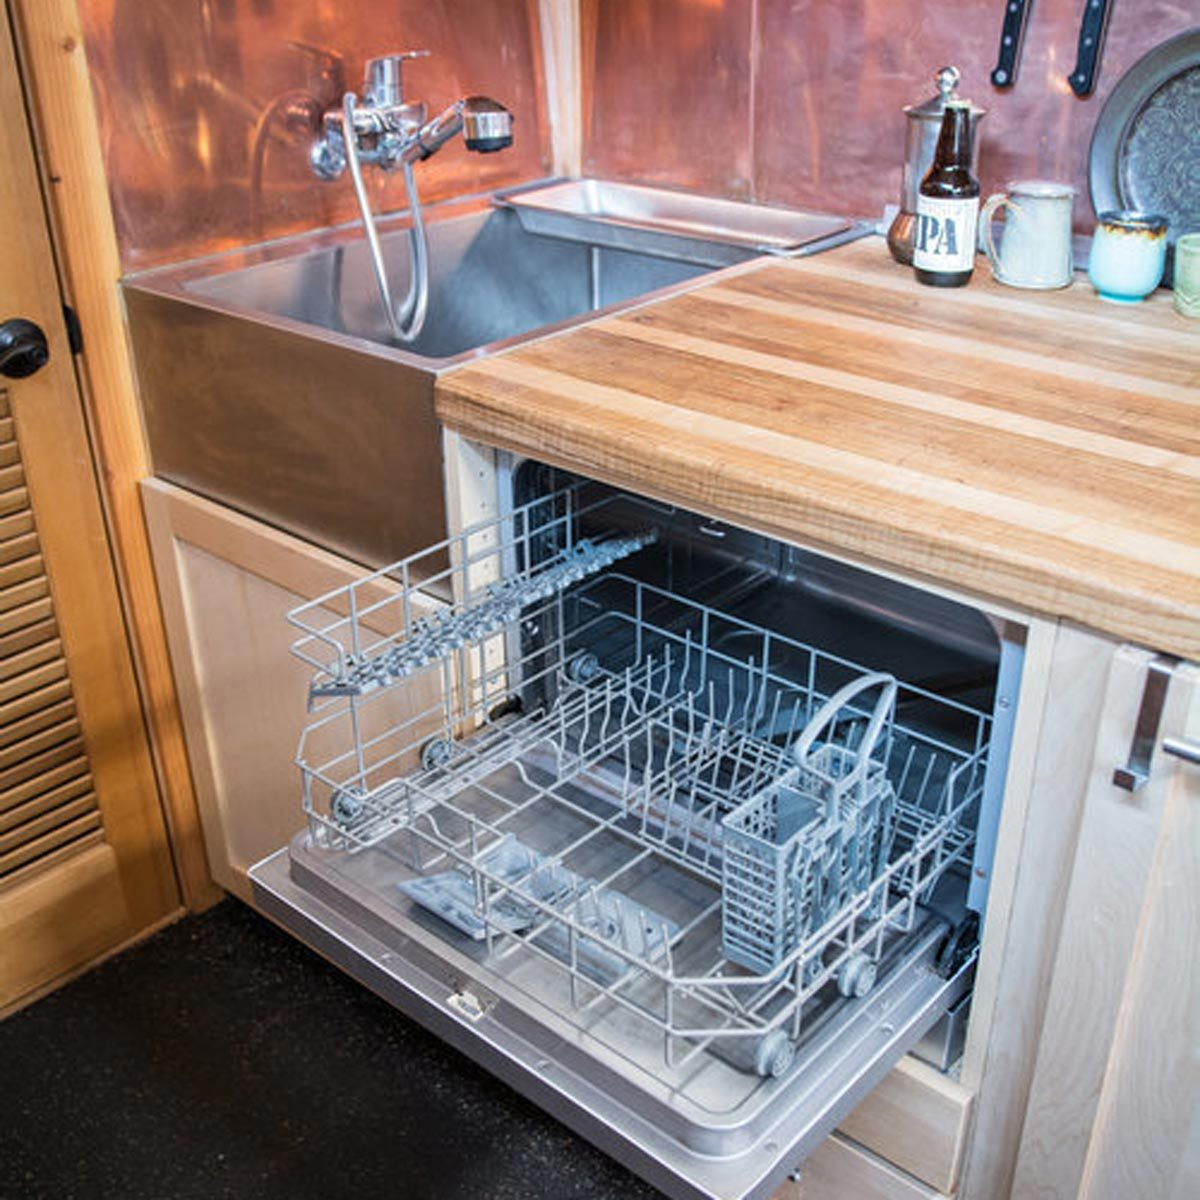 dfh17sep056_08 tiny home kitchen with dishwasher and stainless steel sink